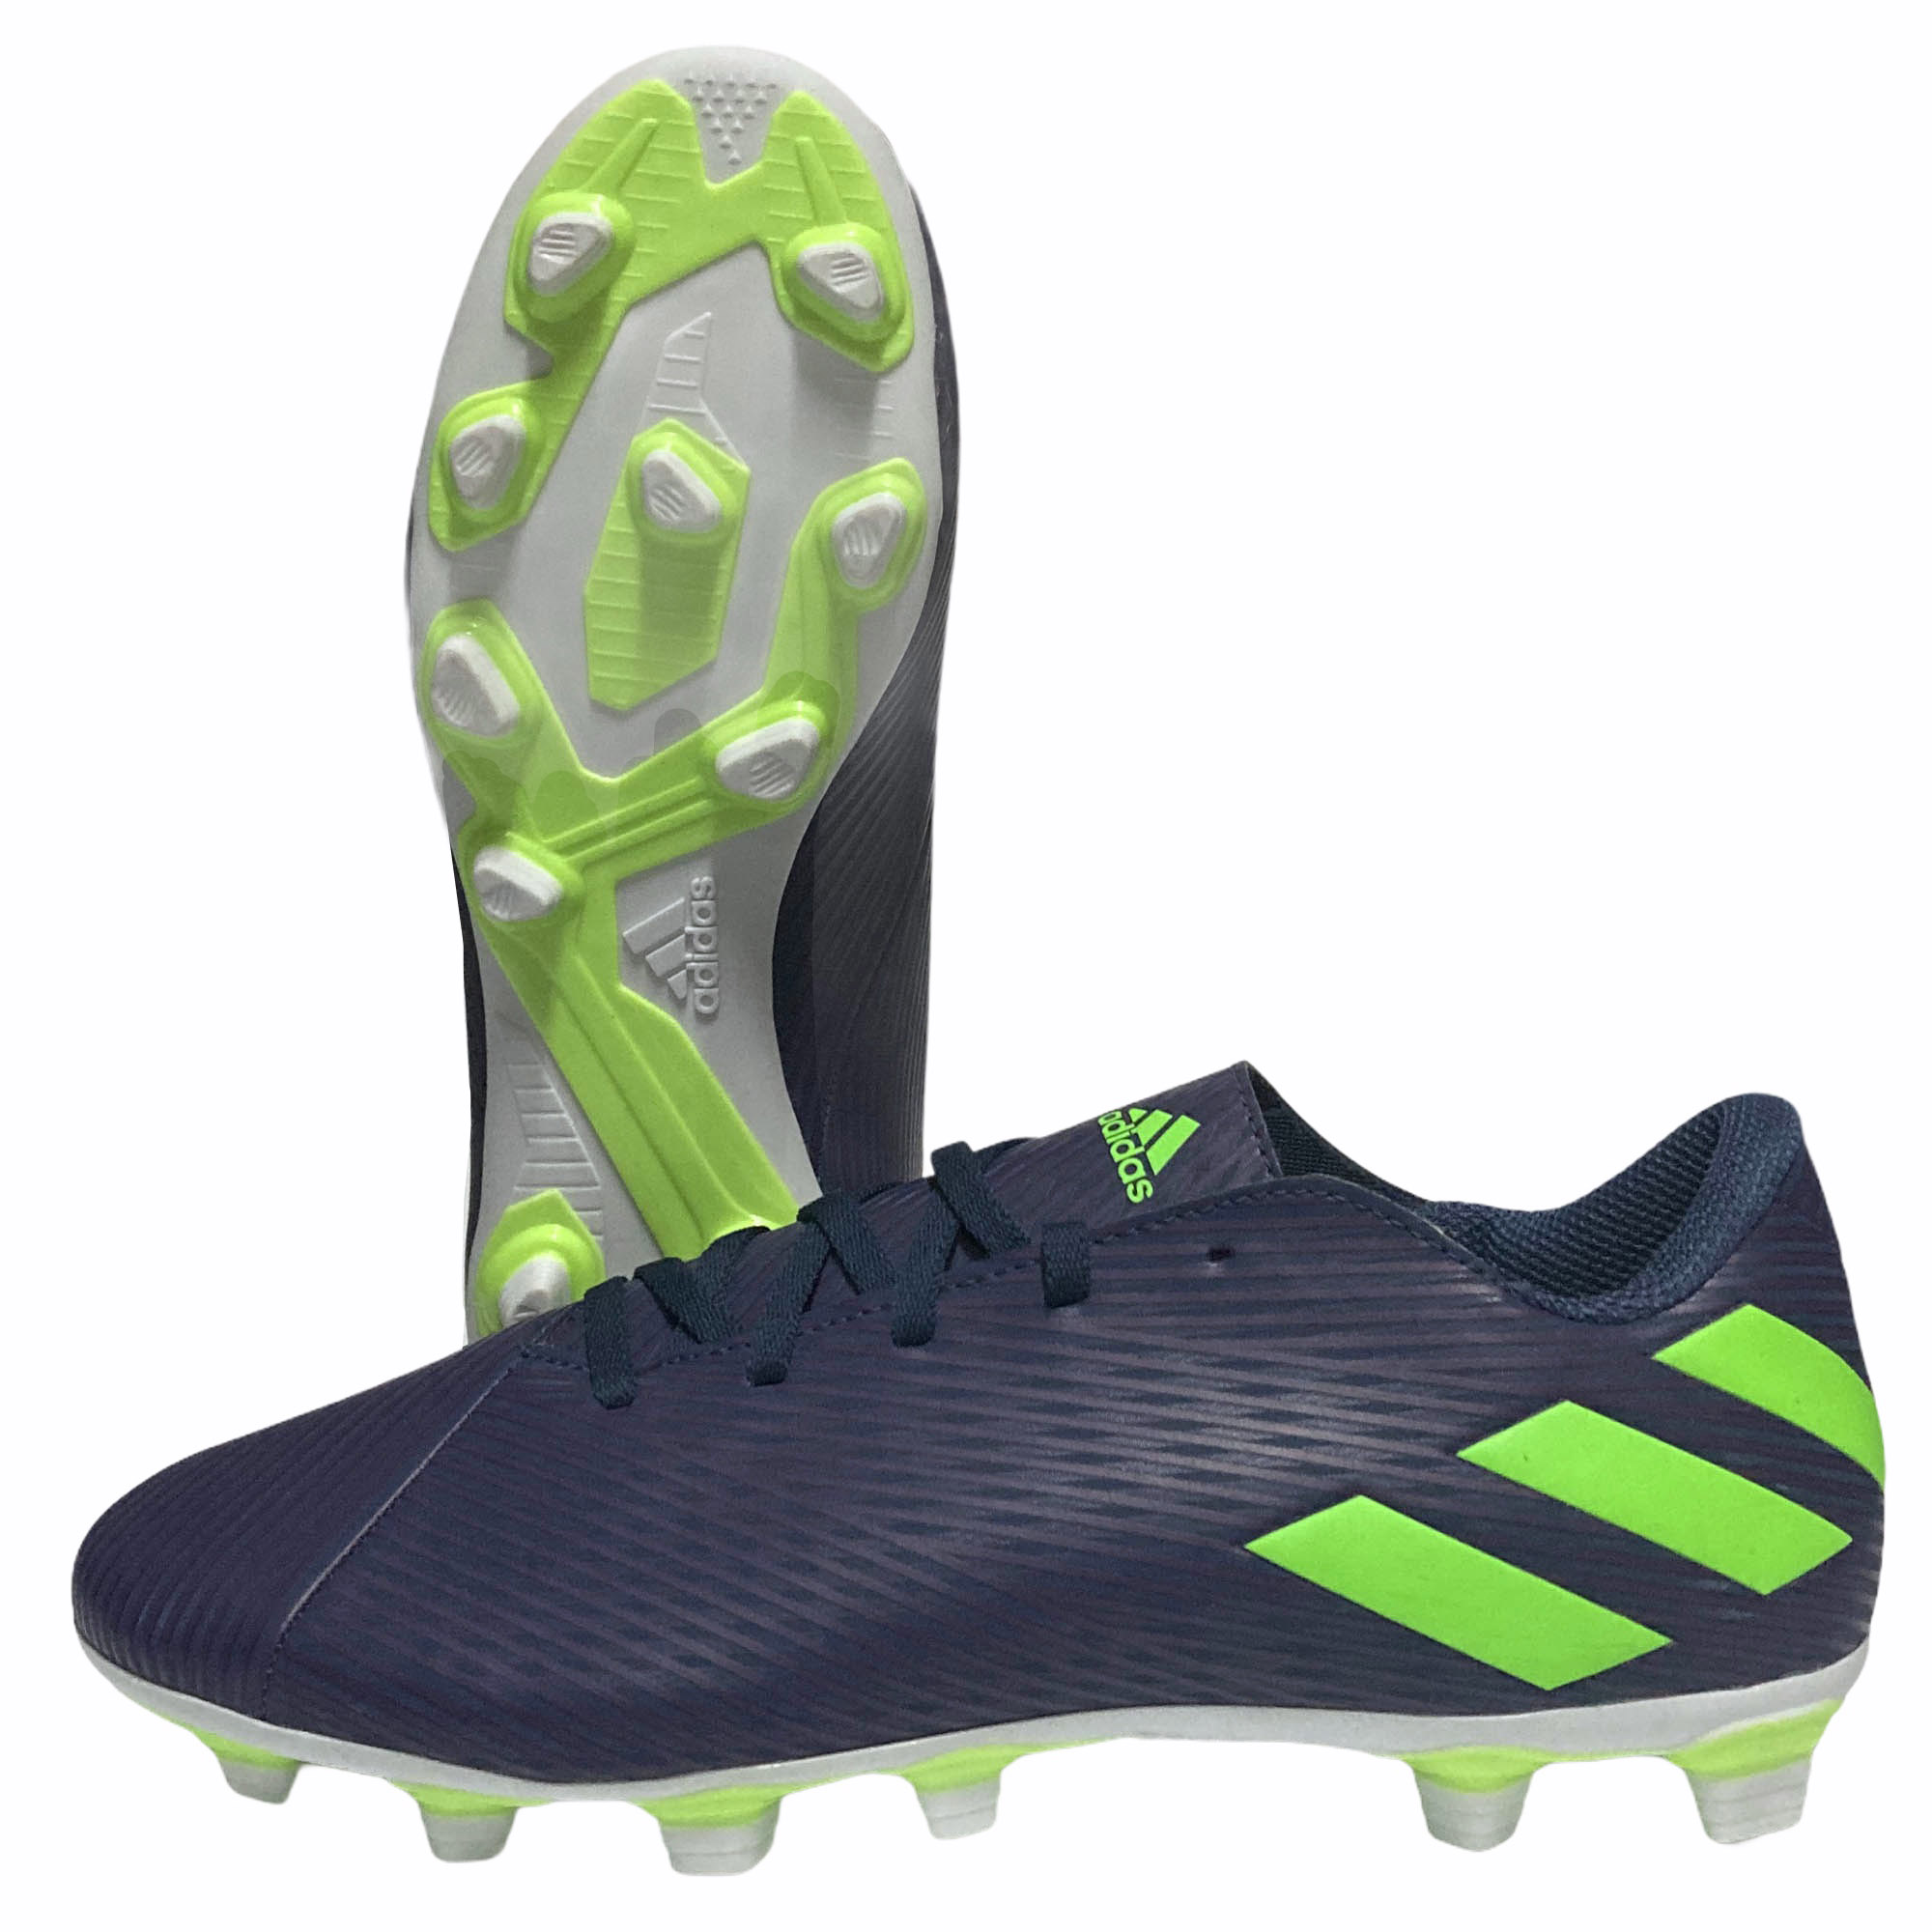 Chuteira Nemeziz Messi 19.4 Flexible Campo